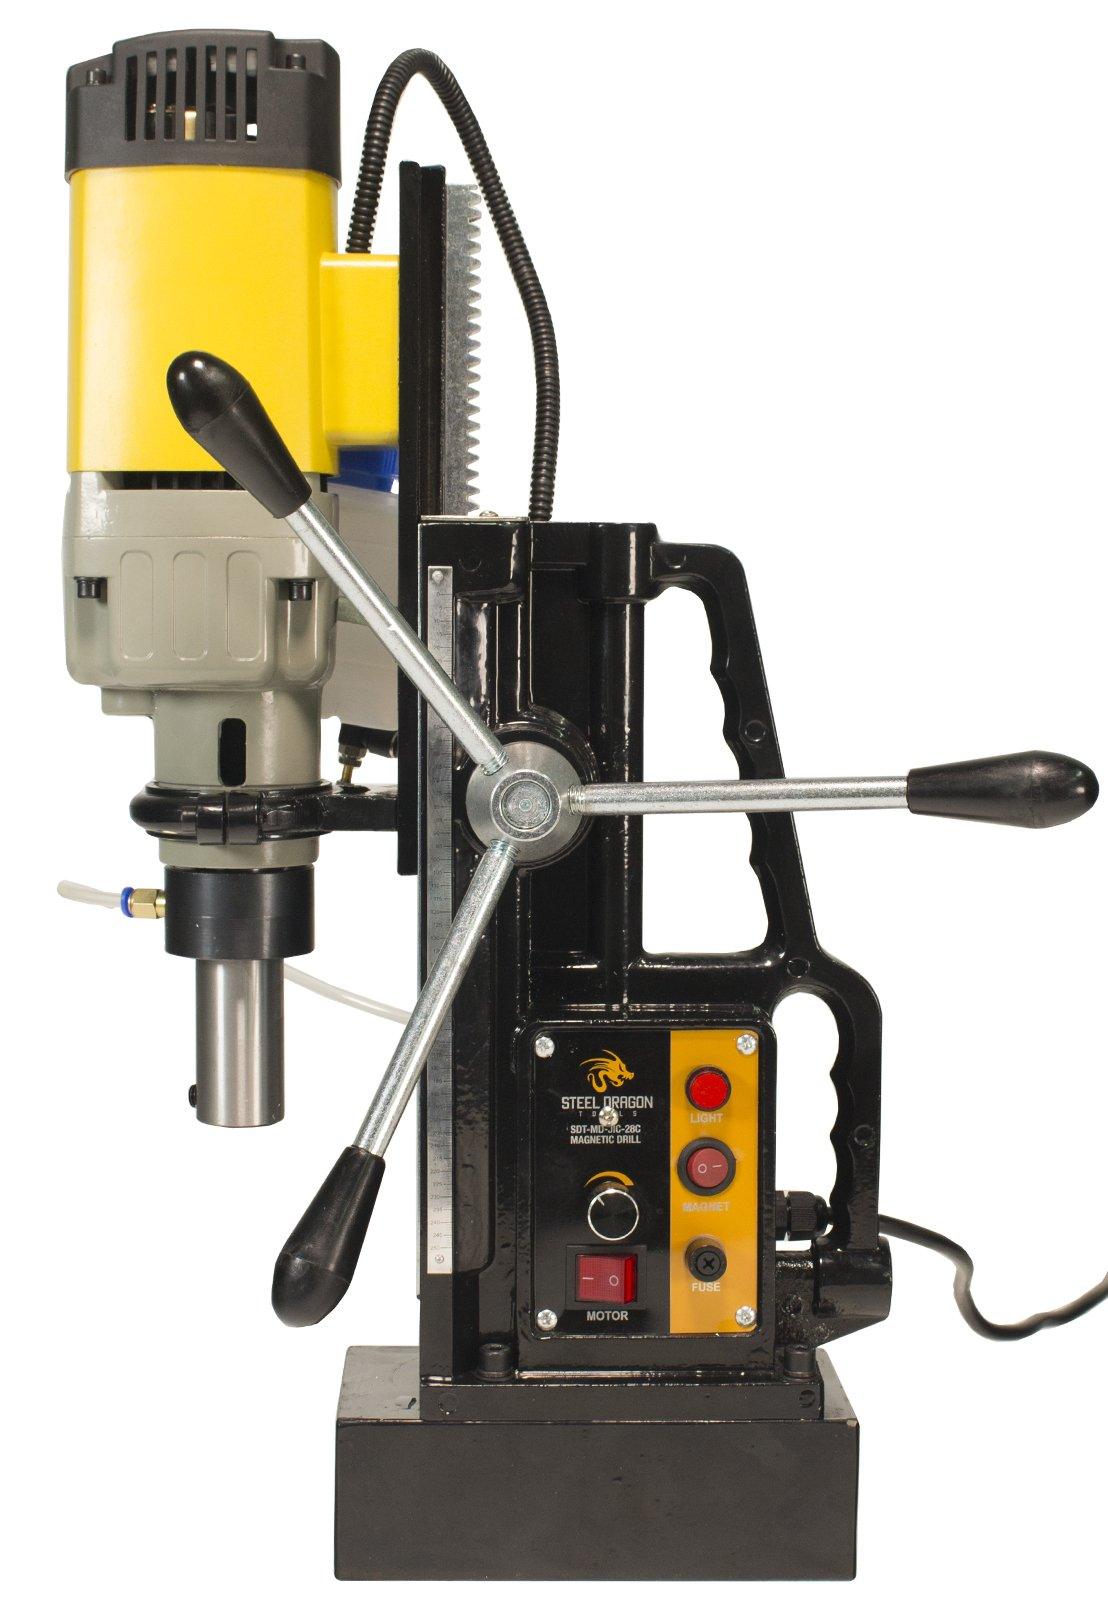 Steel Dragon Tools MD50 Magnetic Drill Press with 2'' Boring Diameter and 2,900 LBS Magnetic Force by Steel Dragon Tools (Image #8)